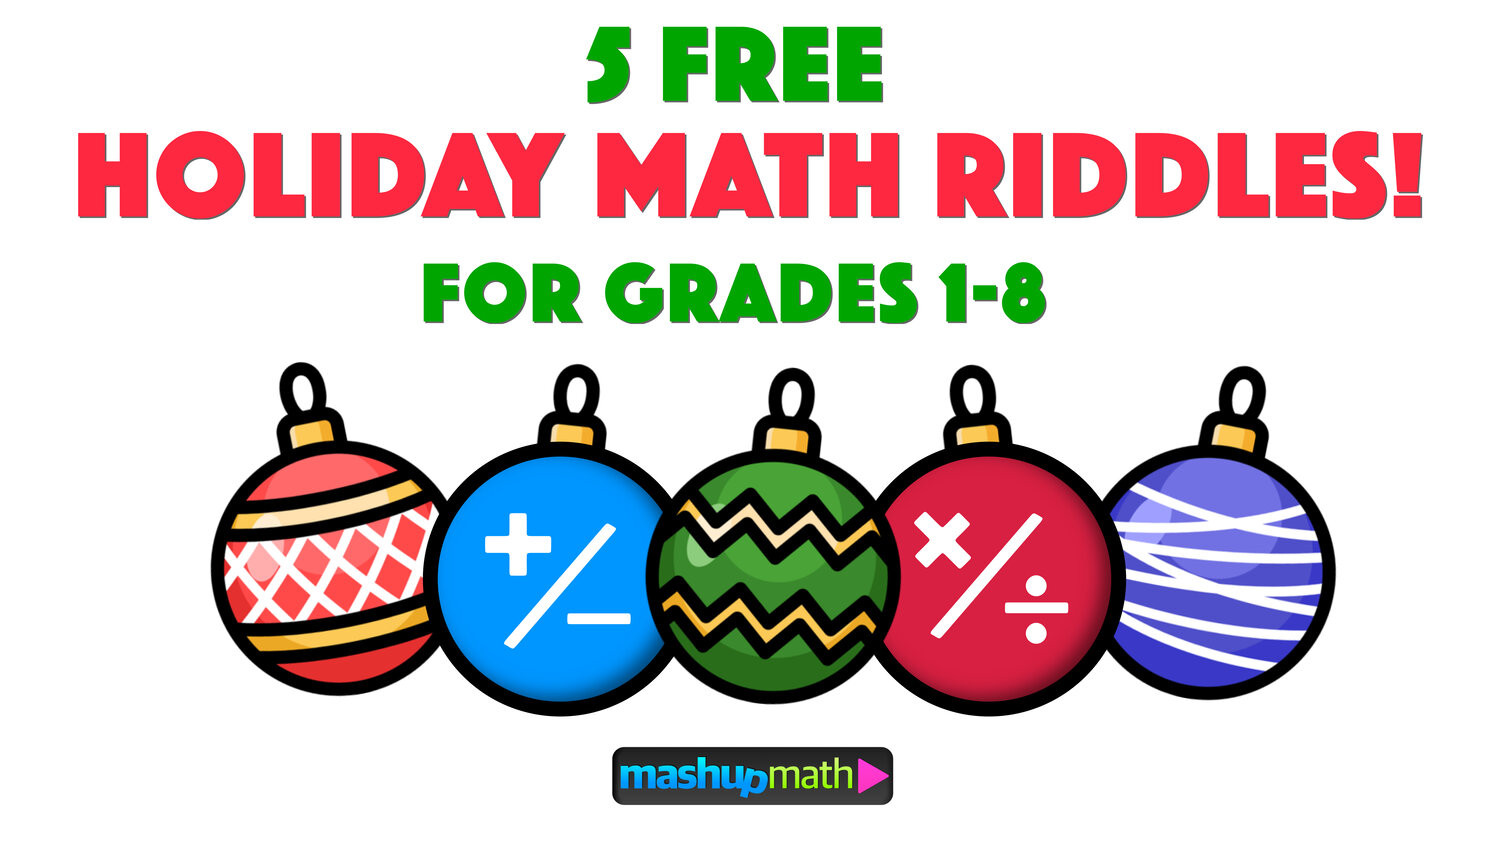 Christmas Math Worksheets 5th Grade 5 Fun Christmas Math Riddles and Brain Teasers for Grades 1